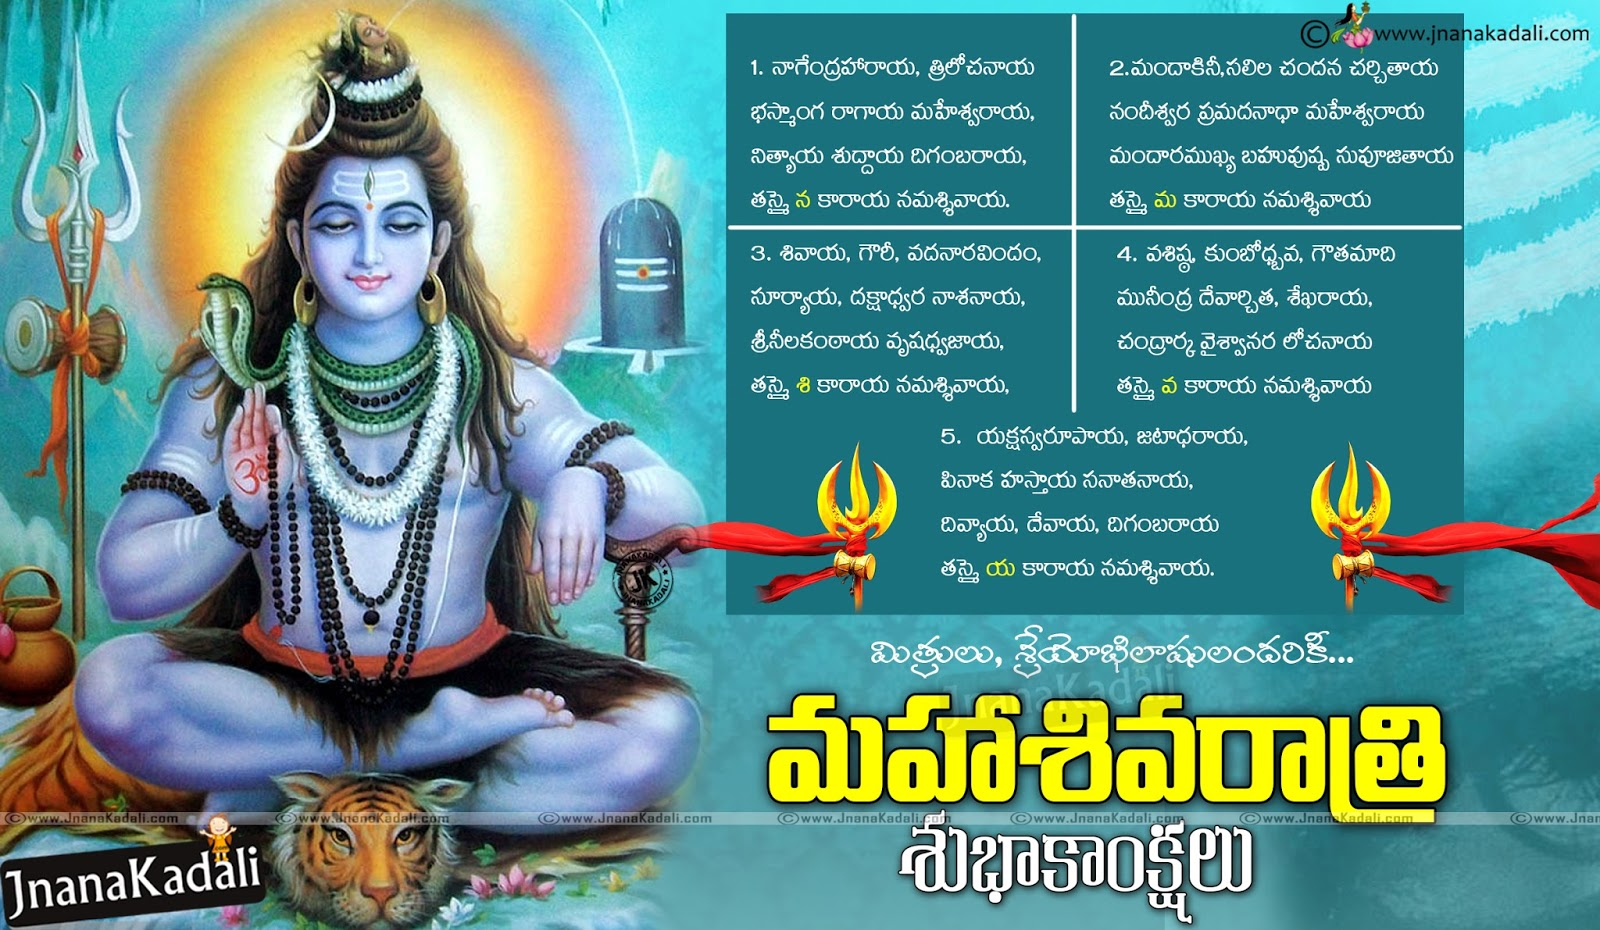 2018 happy maha shivaratri telugu quotations wishes greetings lord shiva marriage maha shivaratri wallpapers telugu maha shivaratri story with images telugu maha m4hsunfo